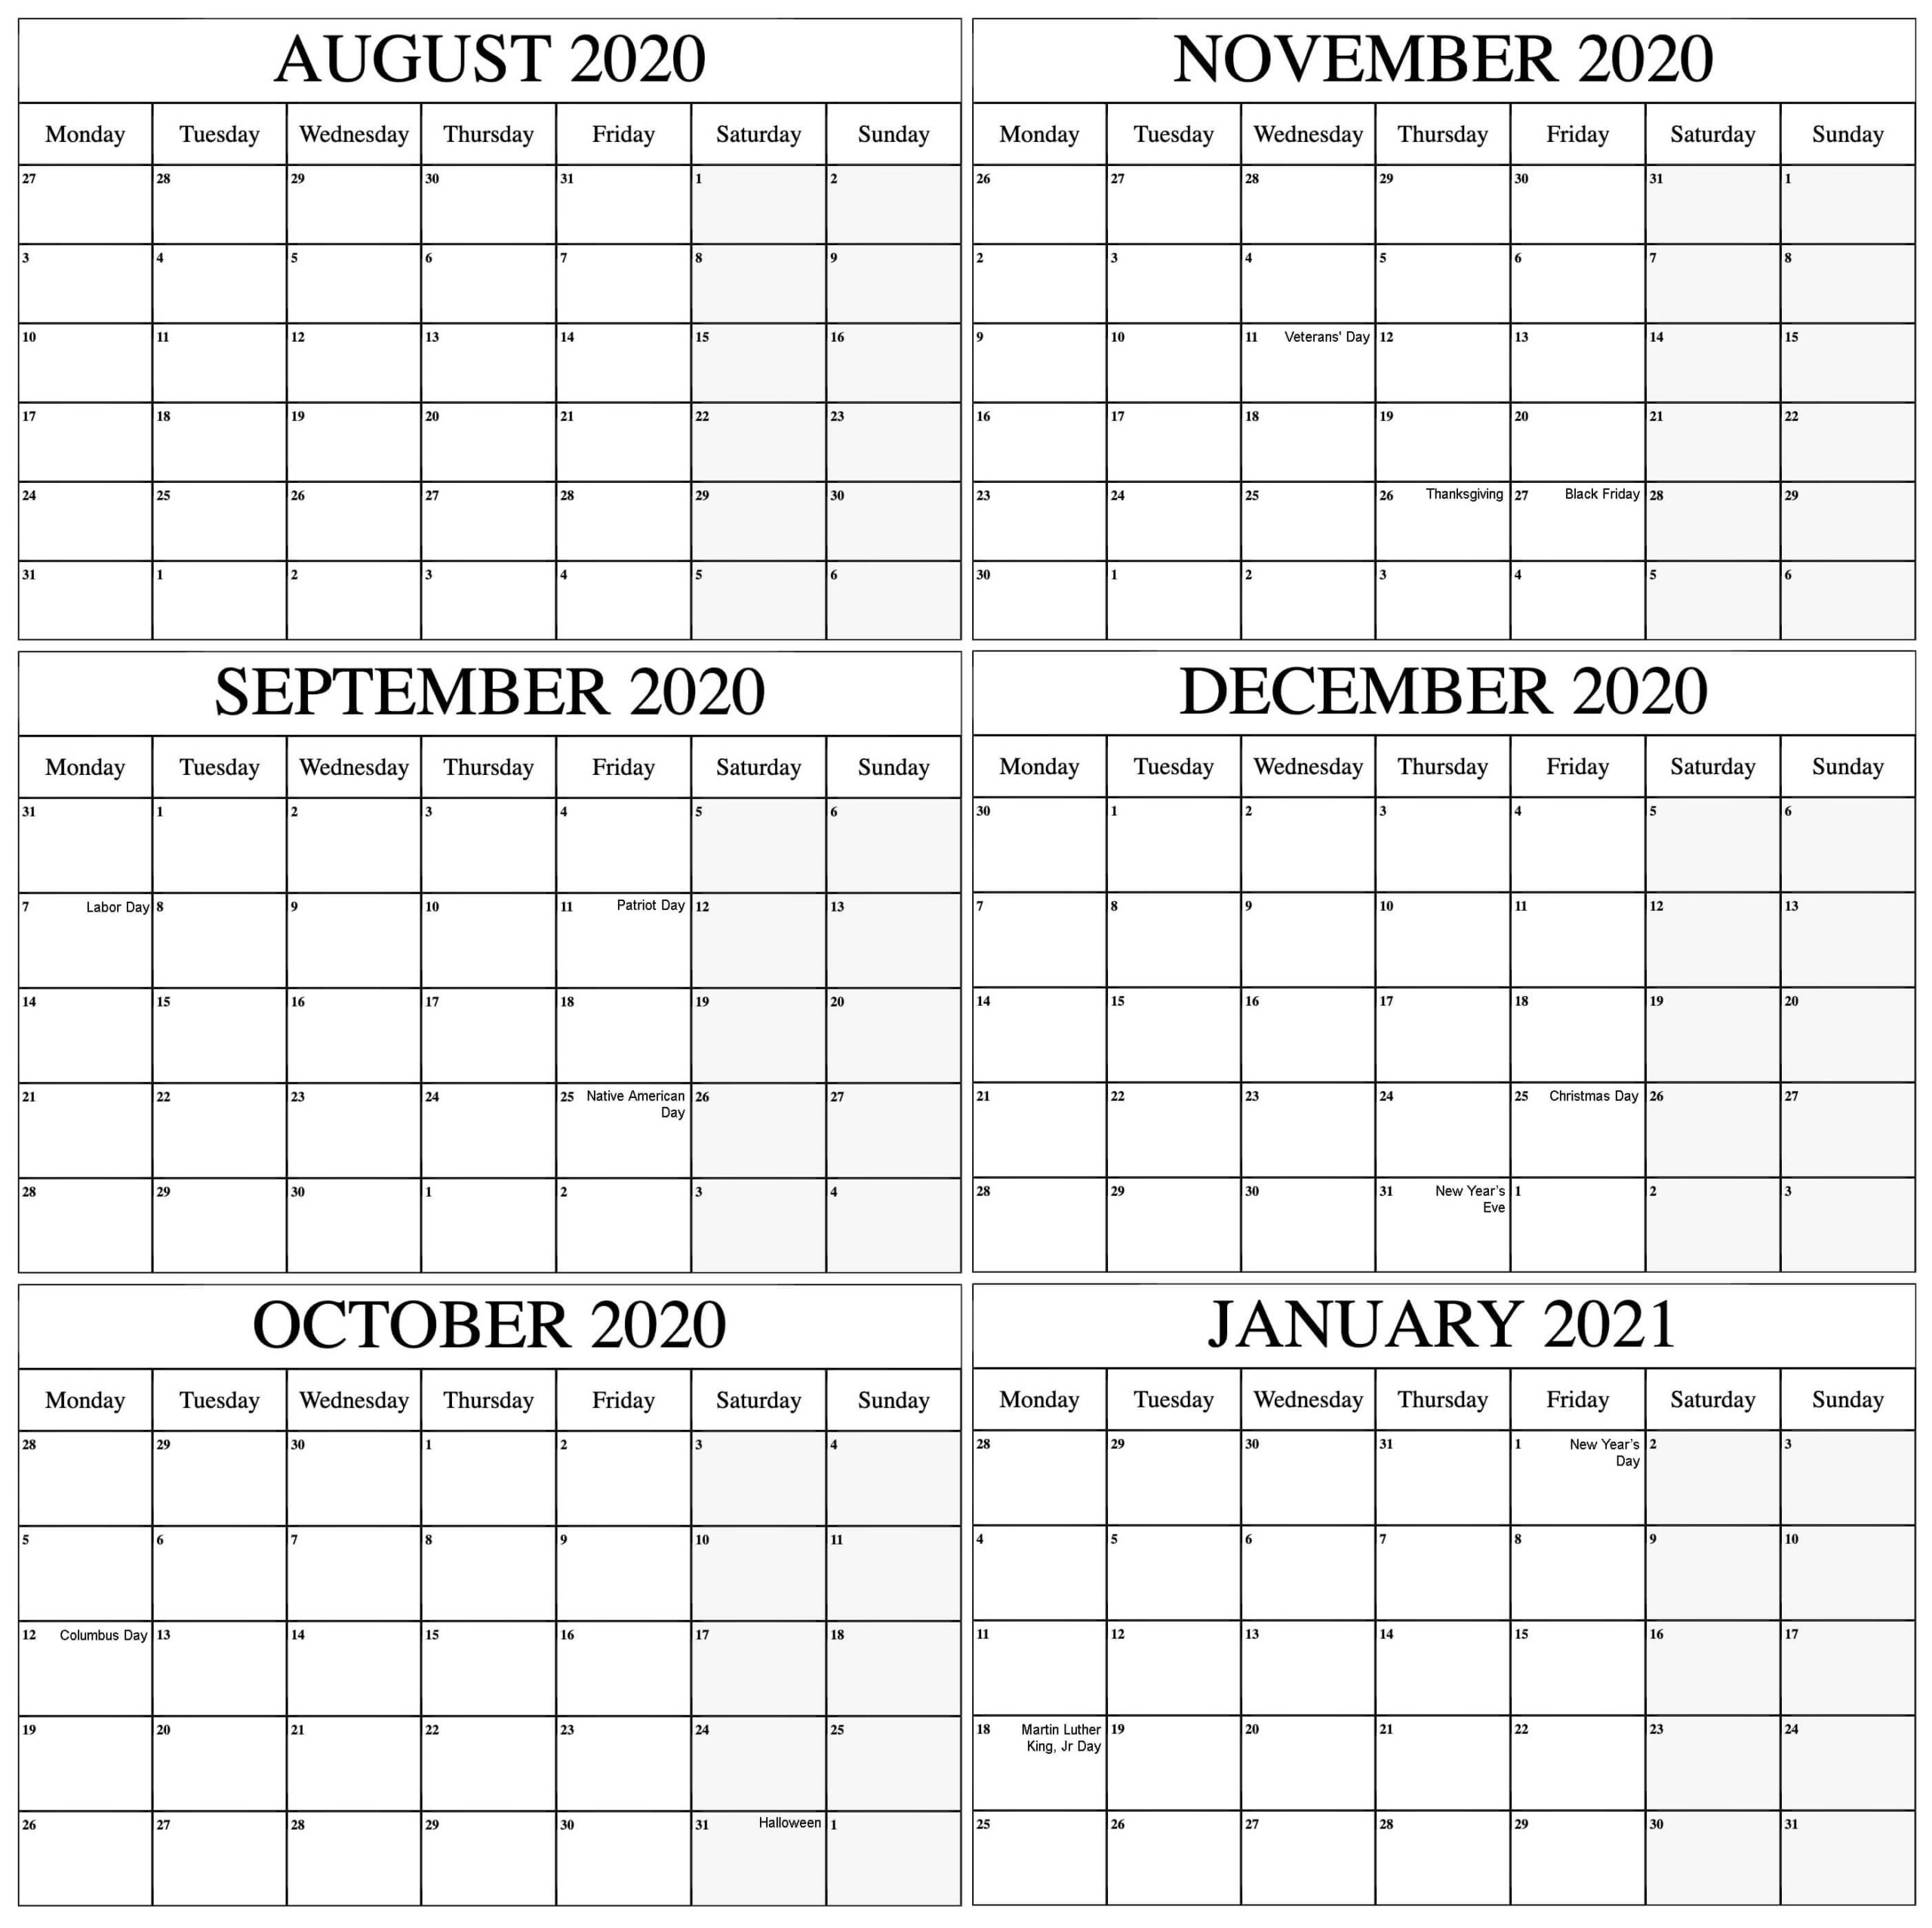 Free August 2020 To January 2021 Calendar Template Excel